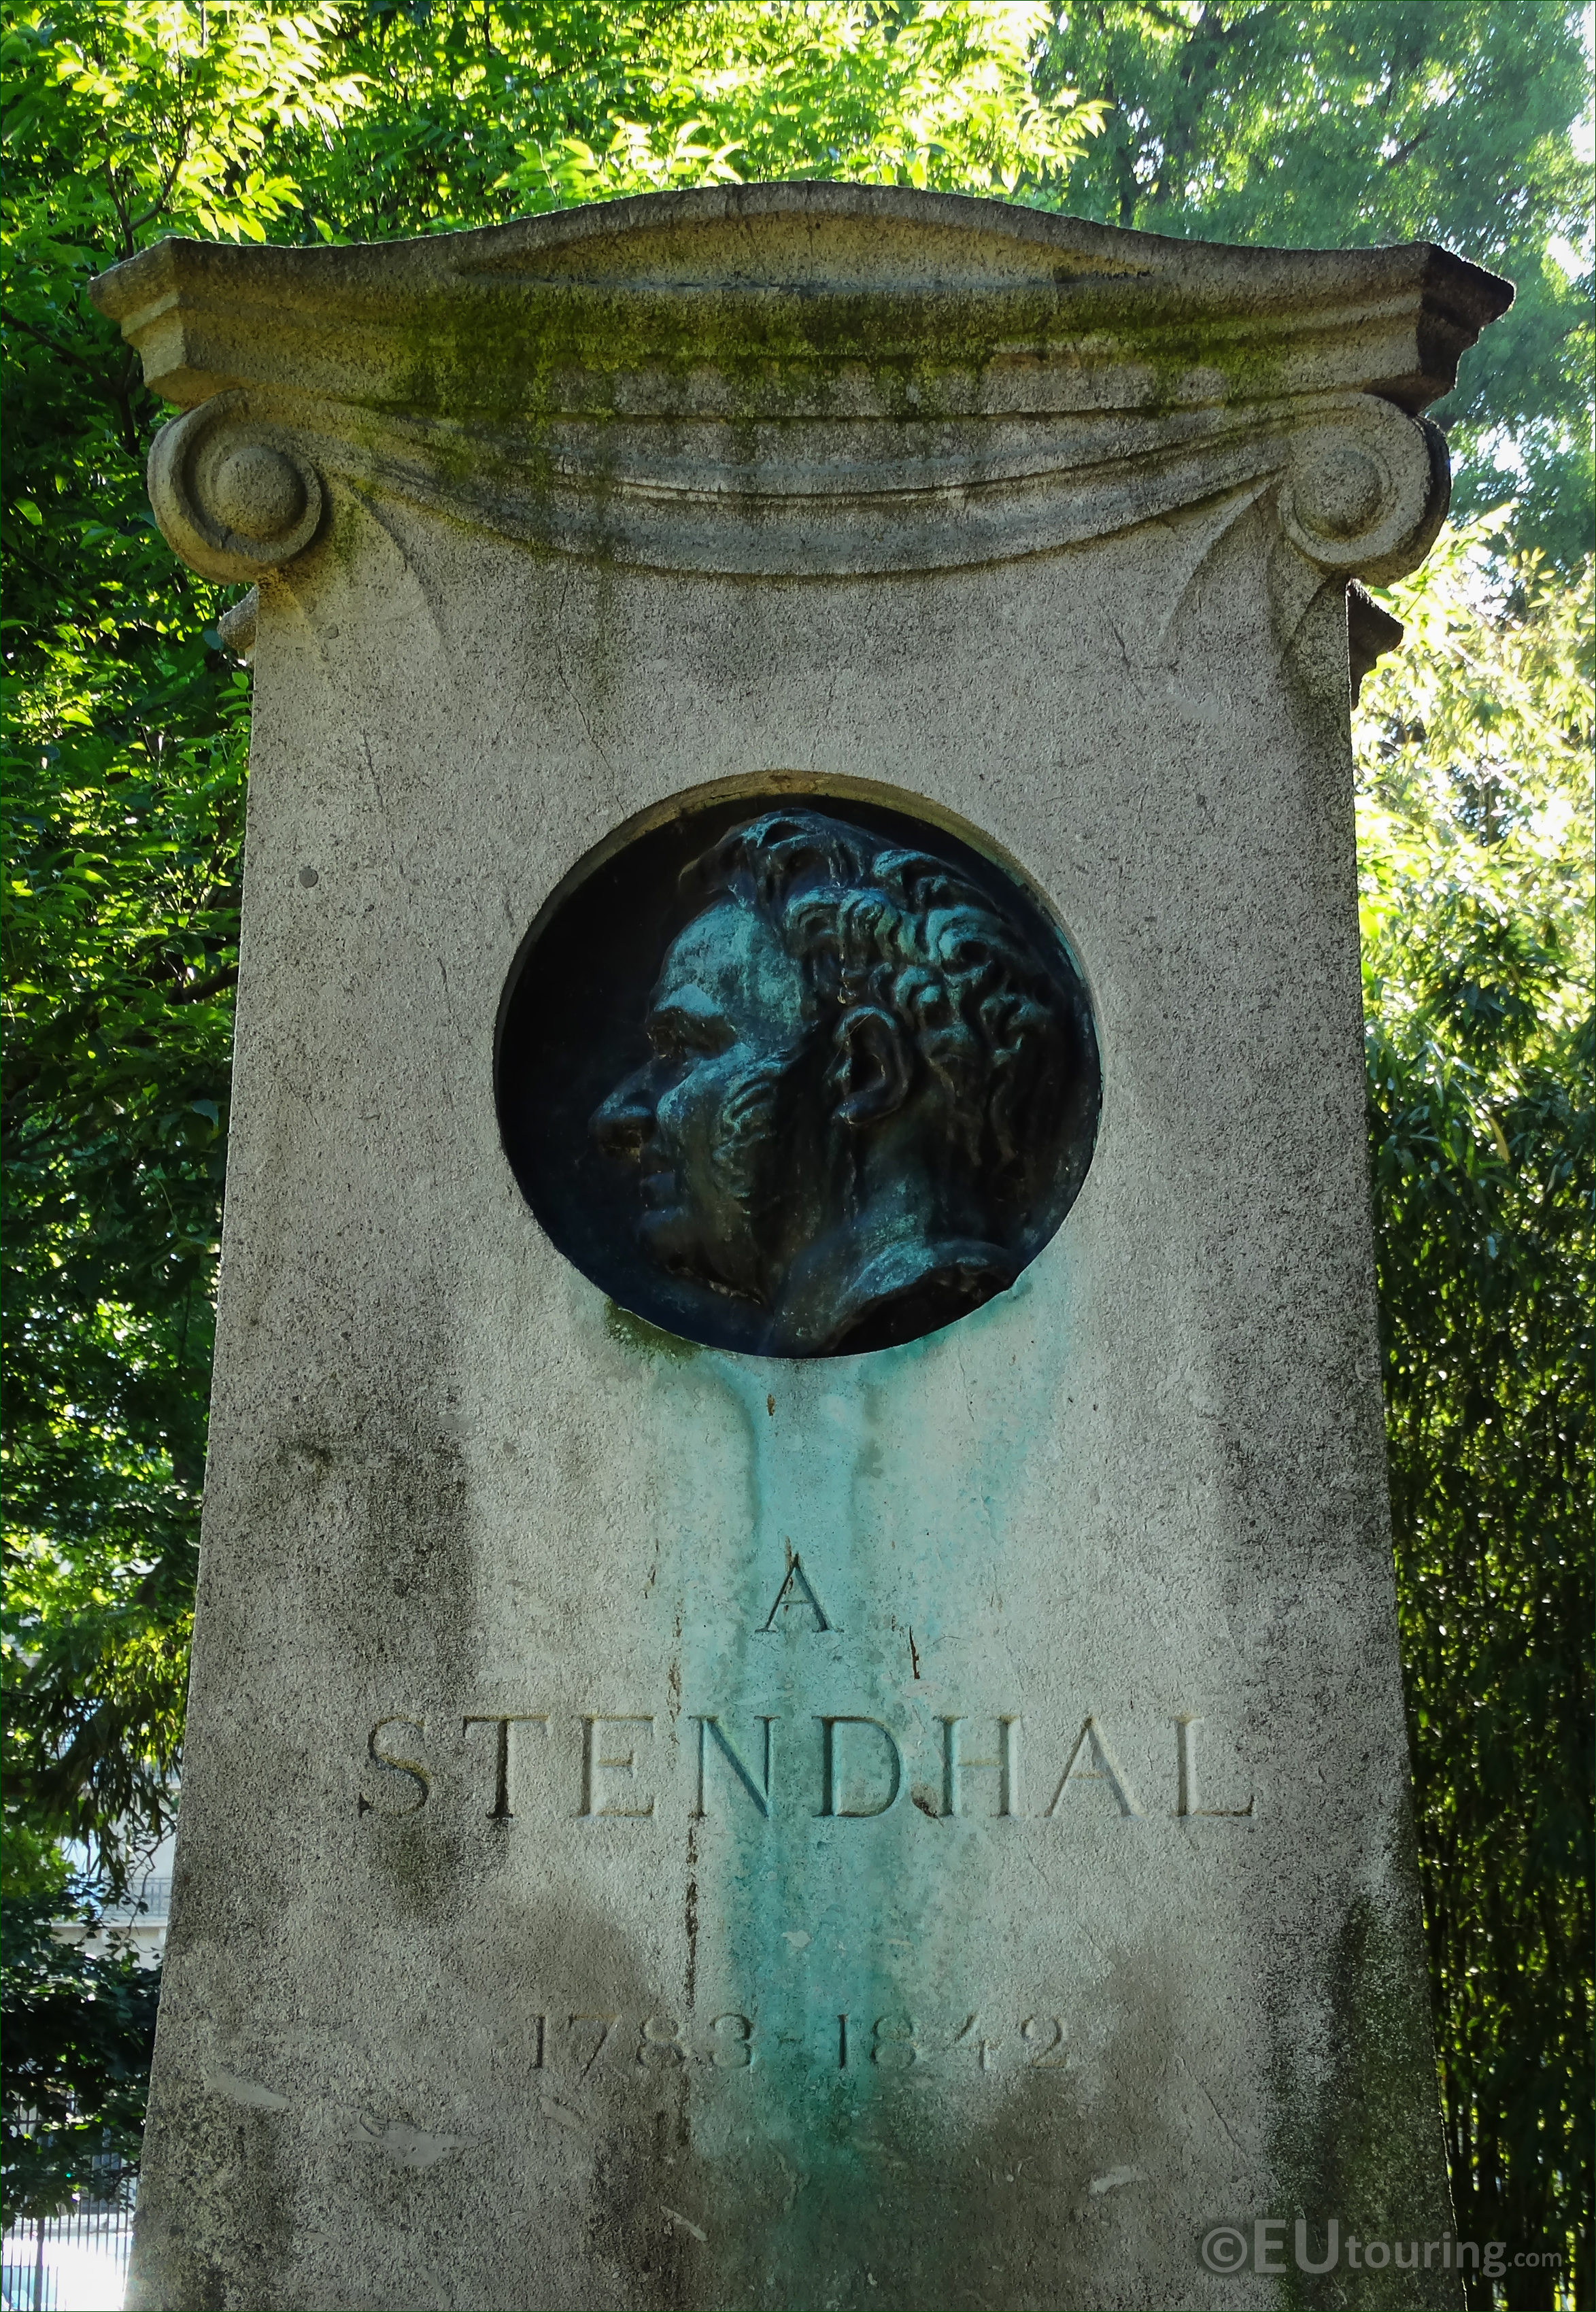 photos of stendhal monument in gardens paris page 234 stendhal or henri beyle commemorative monument